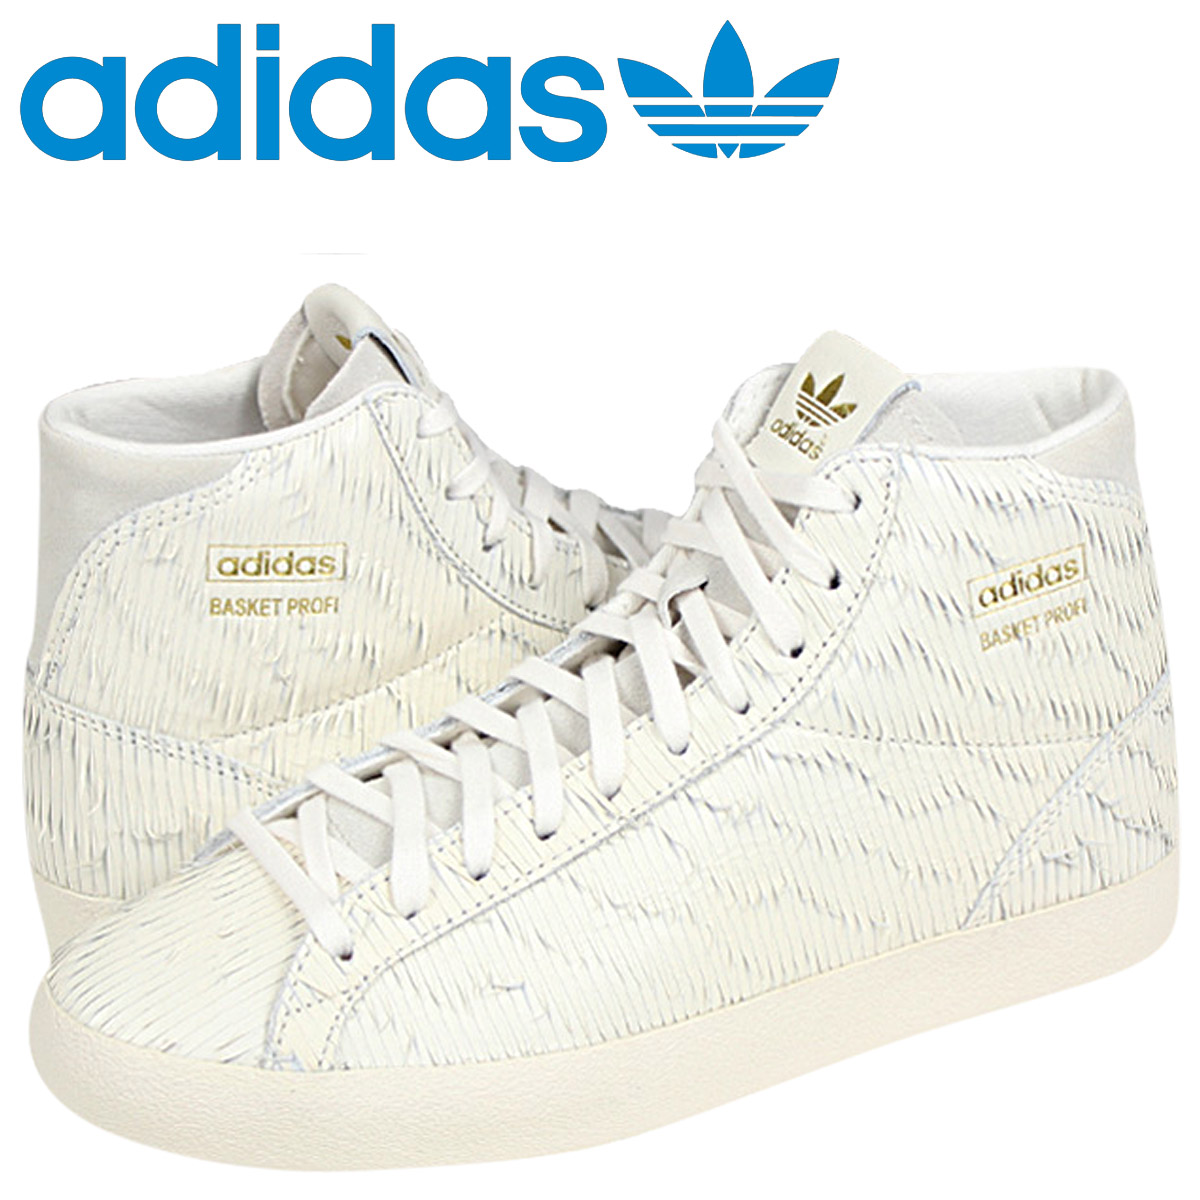 huge discount 16520 e646f Adidas originals adidas Originals Womens BASKET PROFI EAGLE W sneakers  バスケットプロフィ Eagle leather men white D65896 5  2 new in stock regular ...